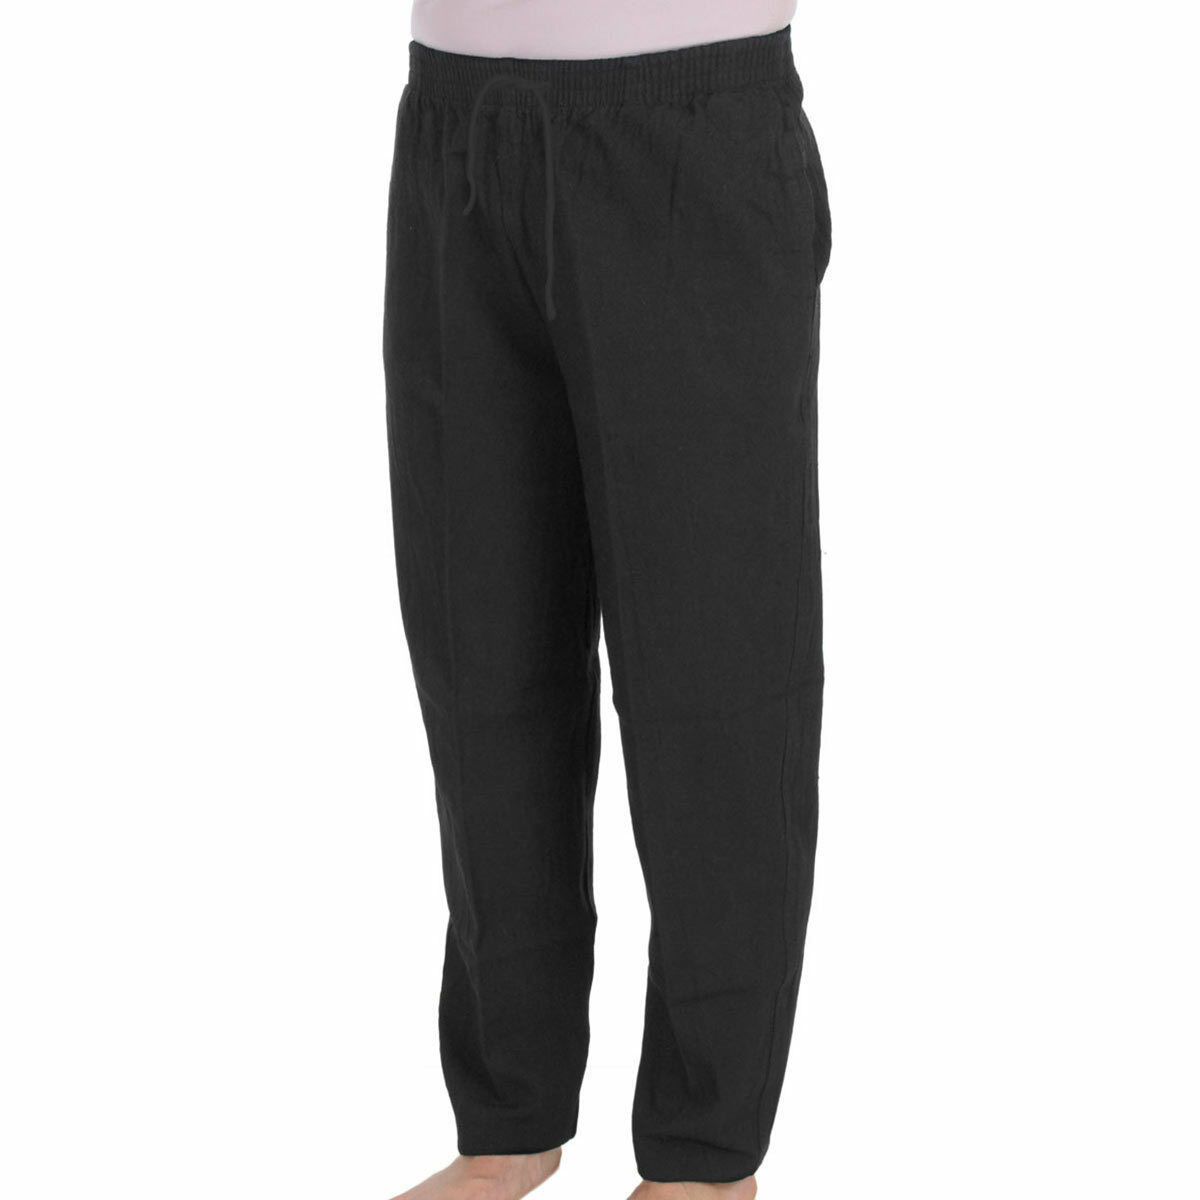 Bermuda Crinkle Cotton Lightweight Ankle Pant - Light- Relaxed Waistband - B215B